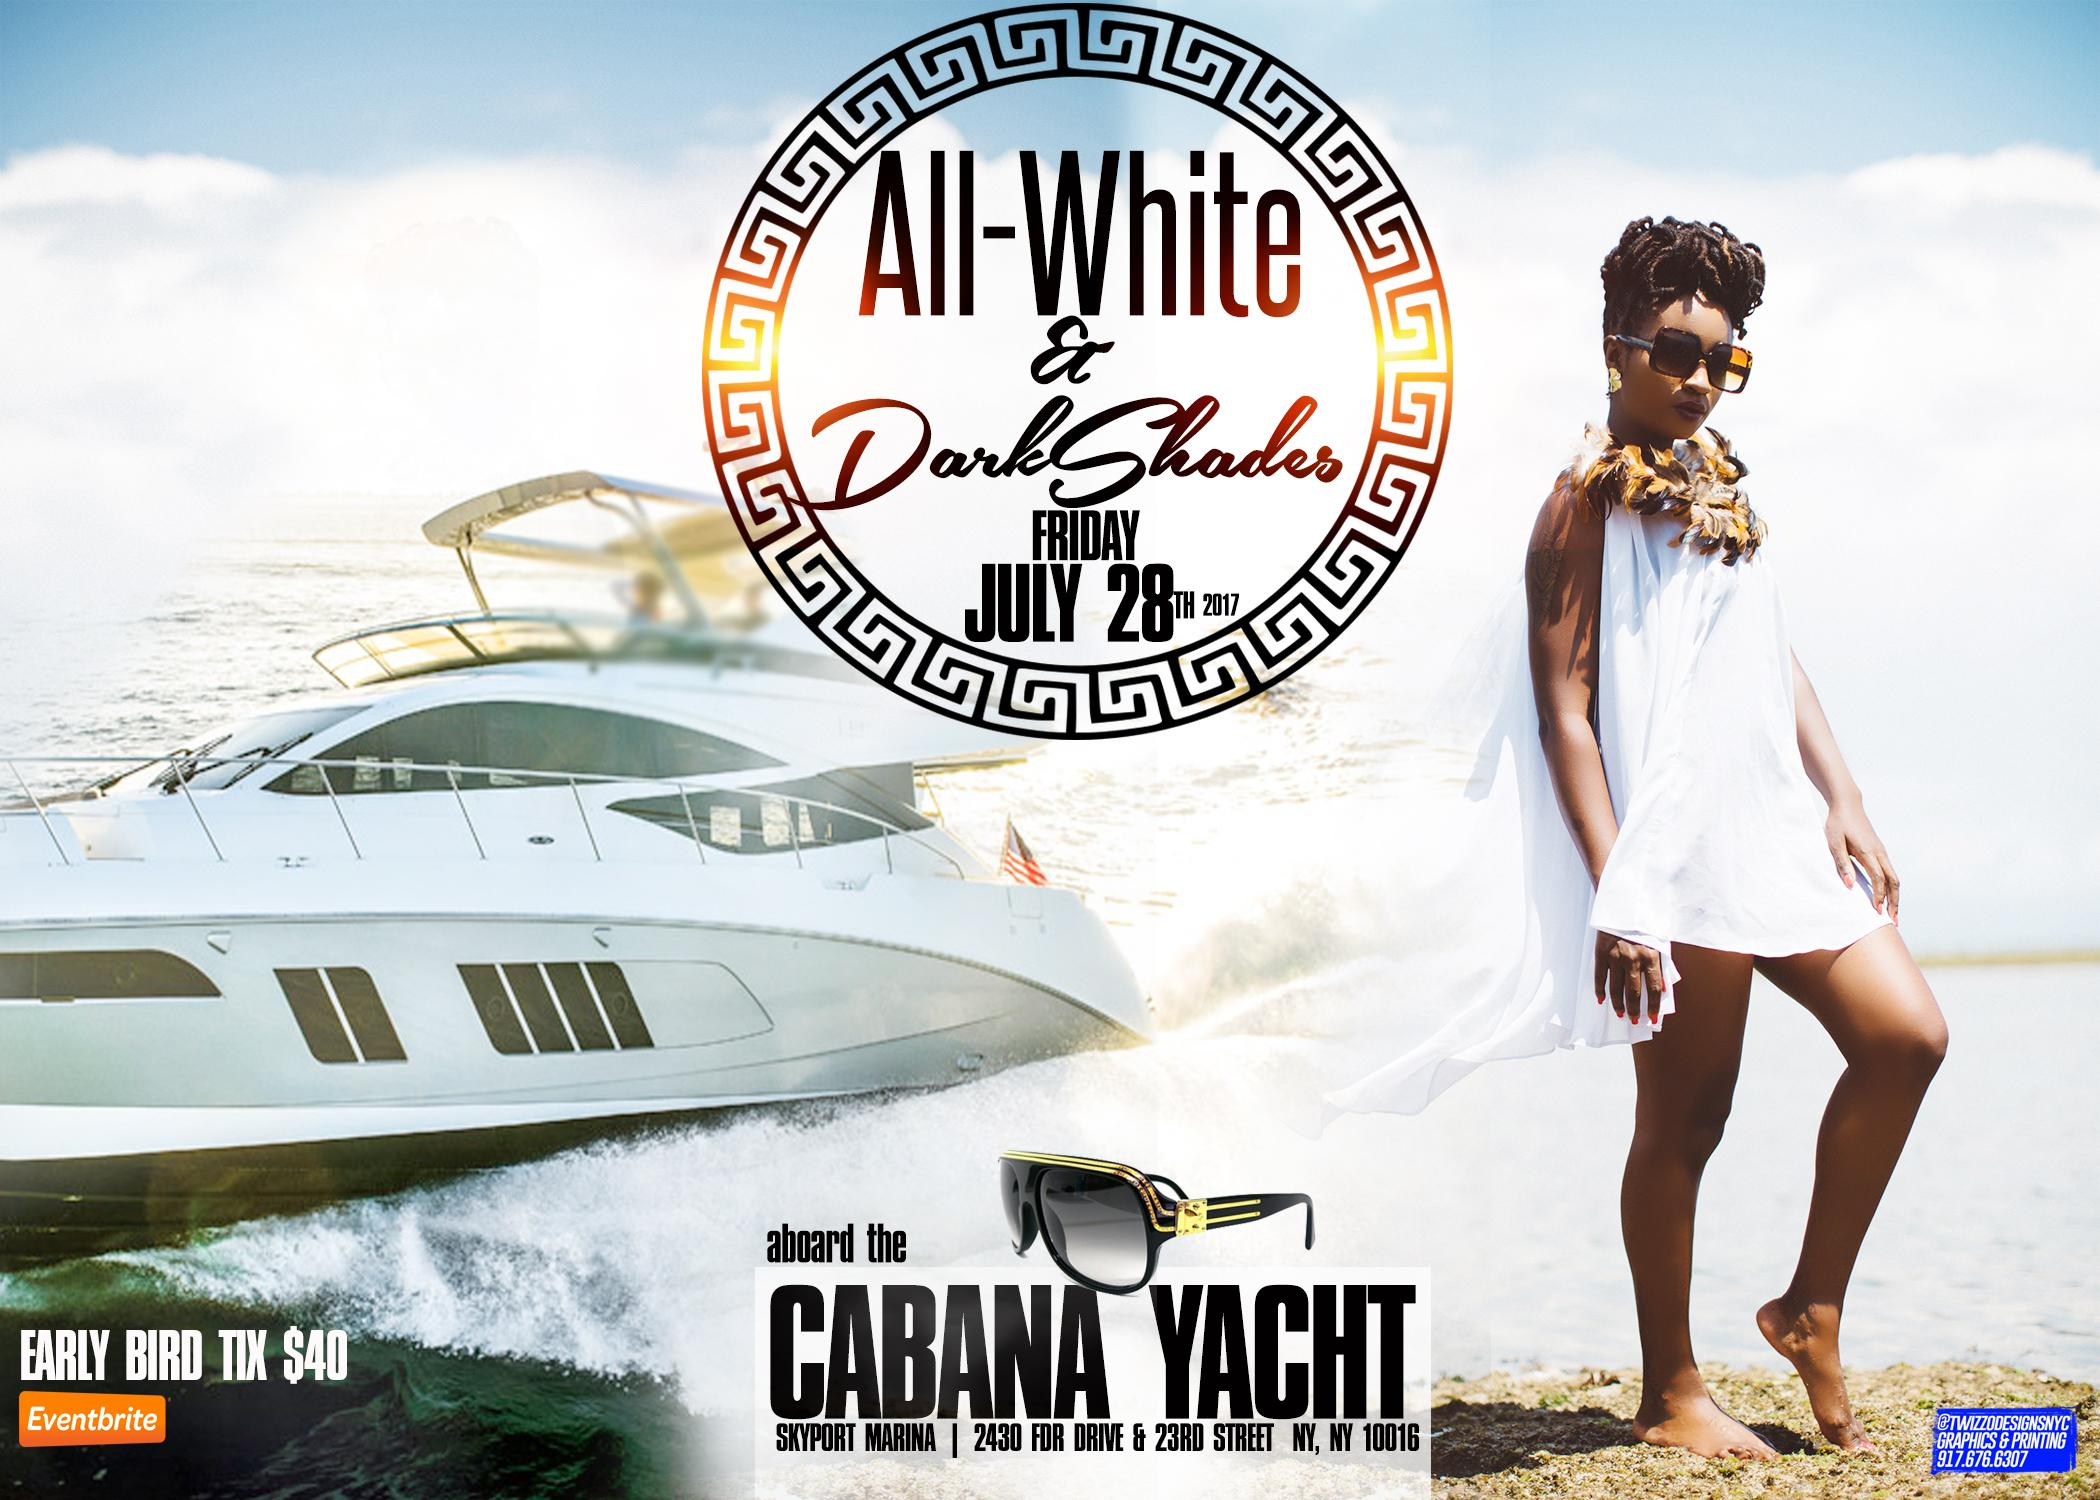 ALL-WHITE & DARK SHADES YACHT PARTY • COMPLIMENTARY BUFFET INCLUDING SEAFOOD. ALL-WHITE & DARK SHADES YACHT PARTY • COMPLIMENTARY BUFFET INCLUDING SEAFOOD